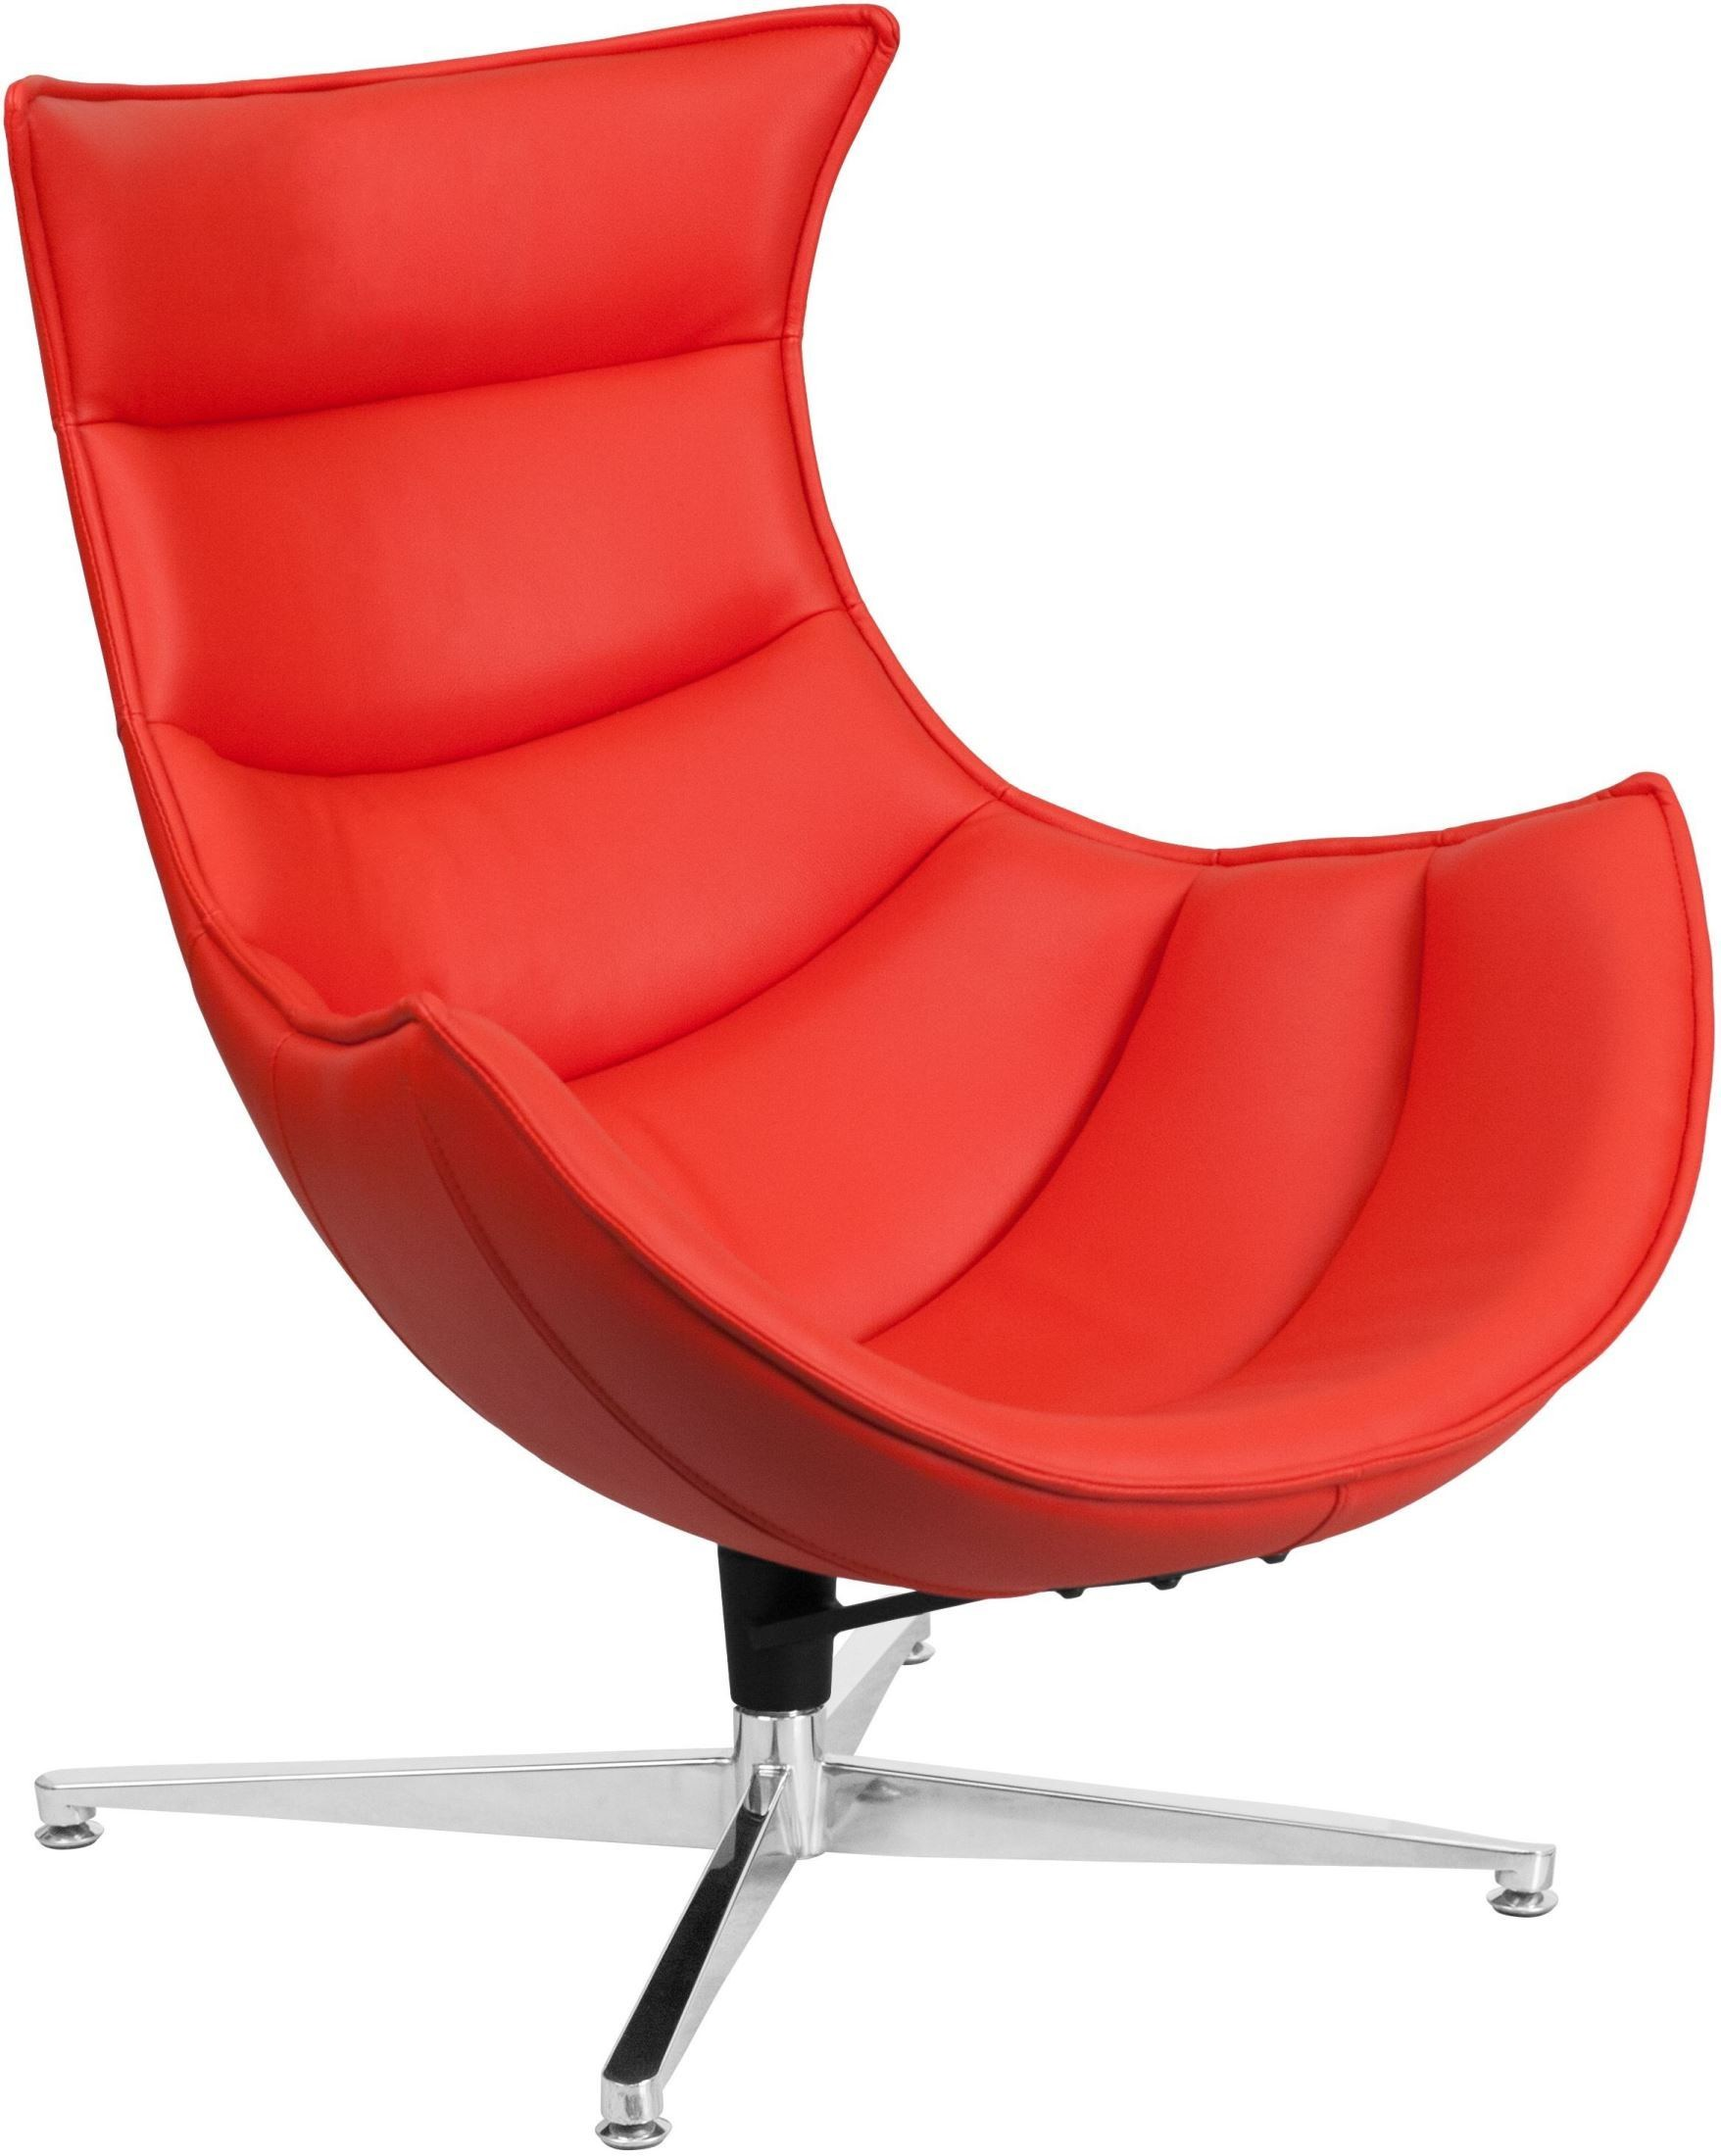 Cocoon Chair Red Leather Swivel Cocoon Chair From Renegade Coleman